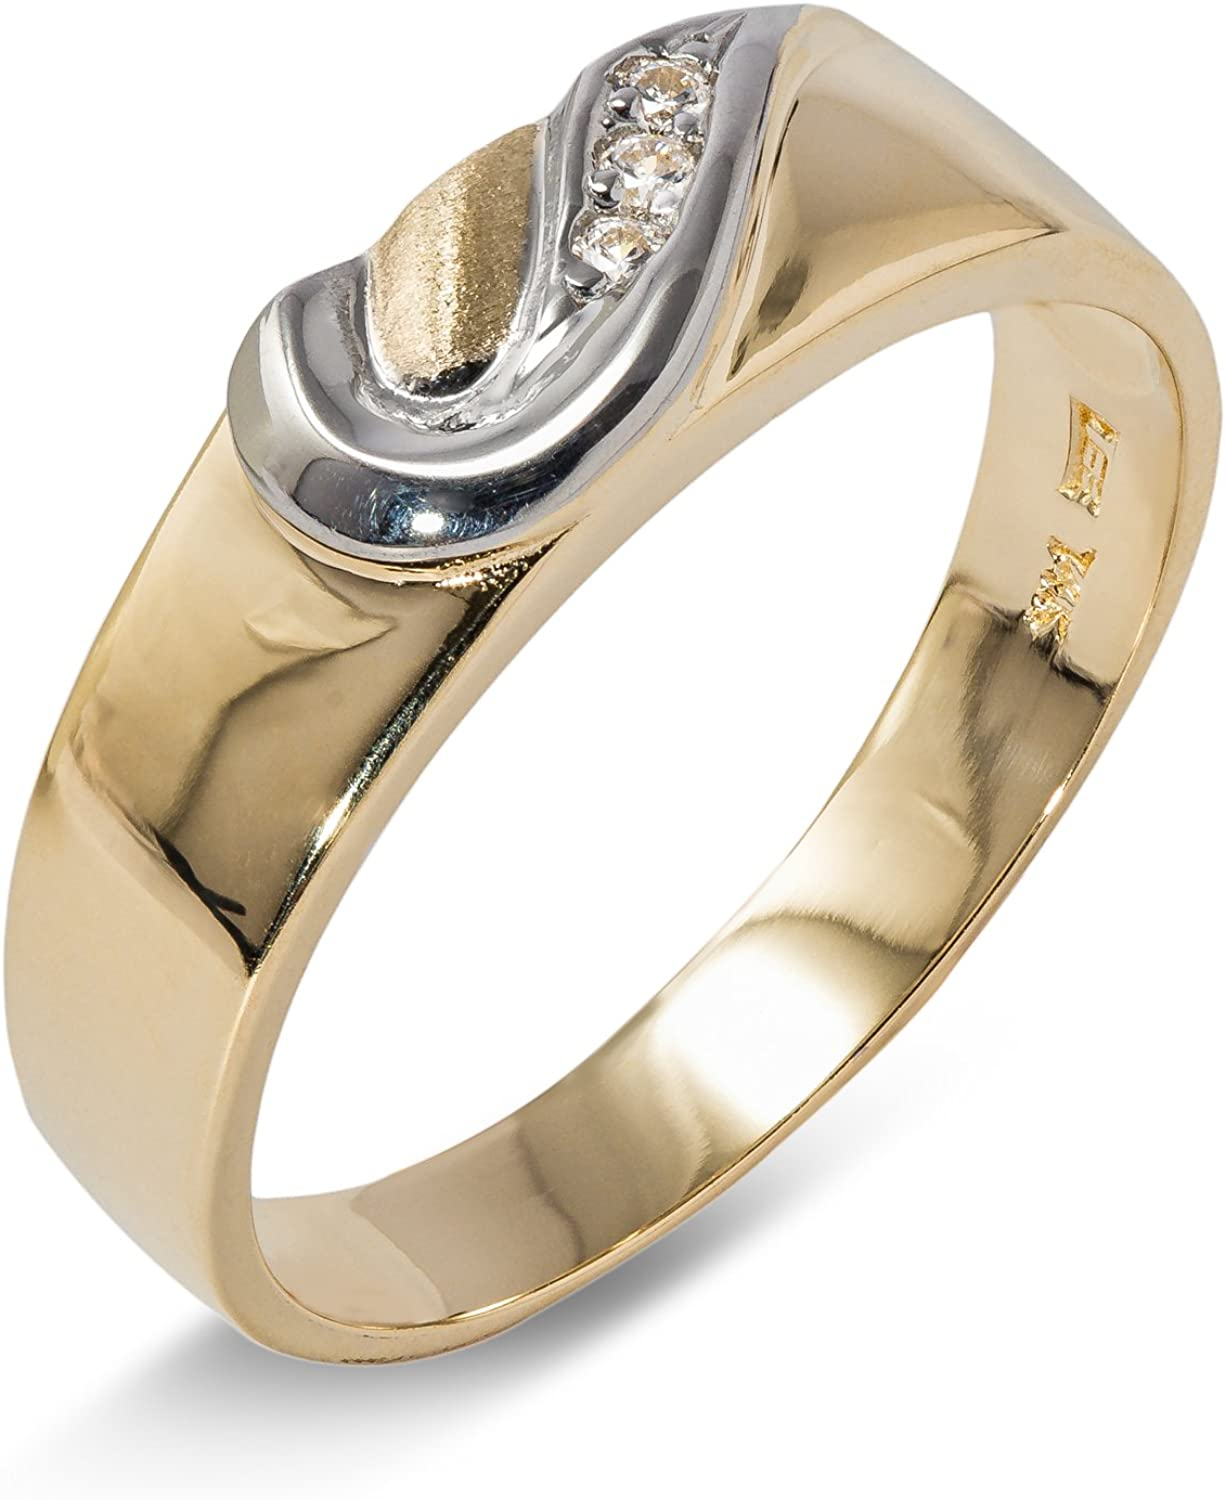 14K Solid Gold 6MM Two Tone gold CZ Mens Wedding Band Ioka